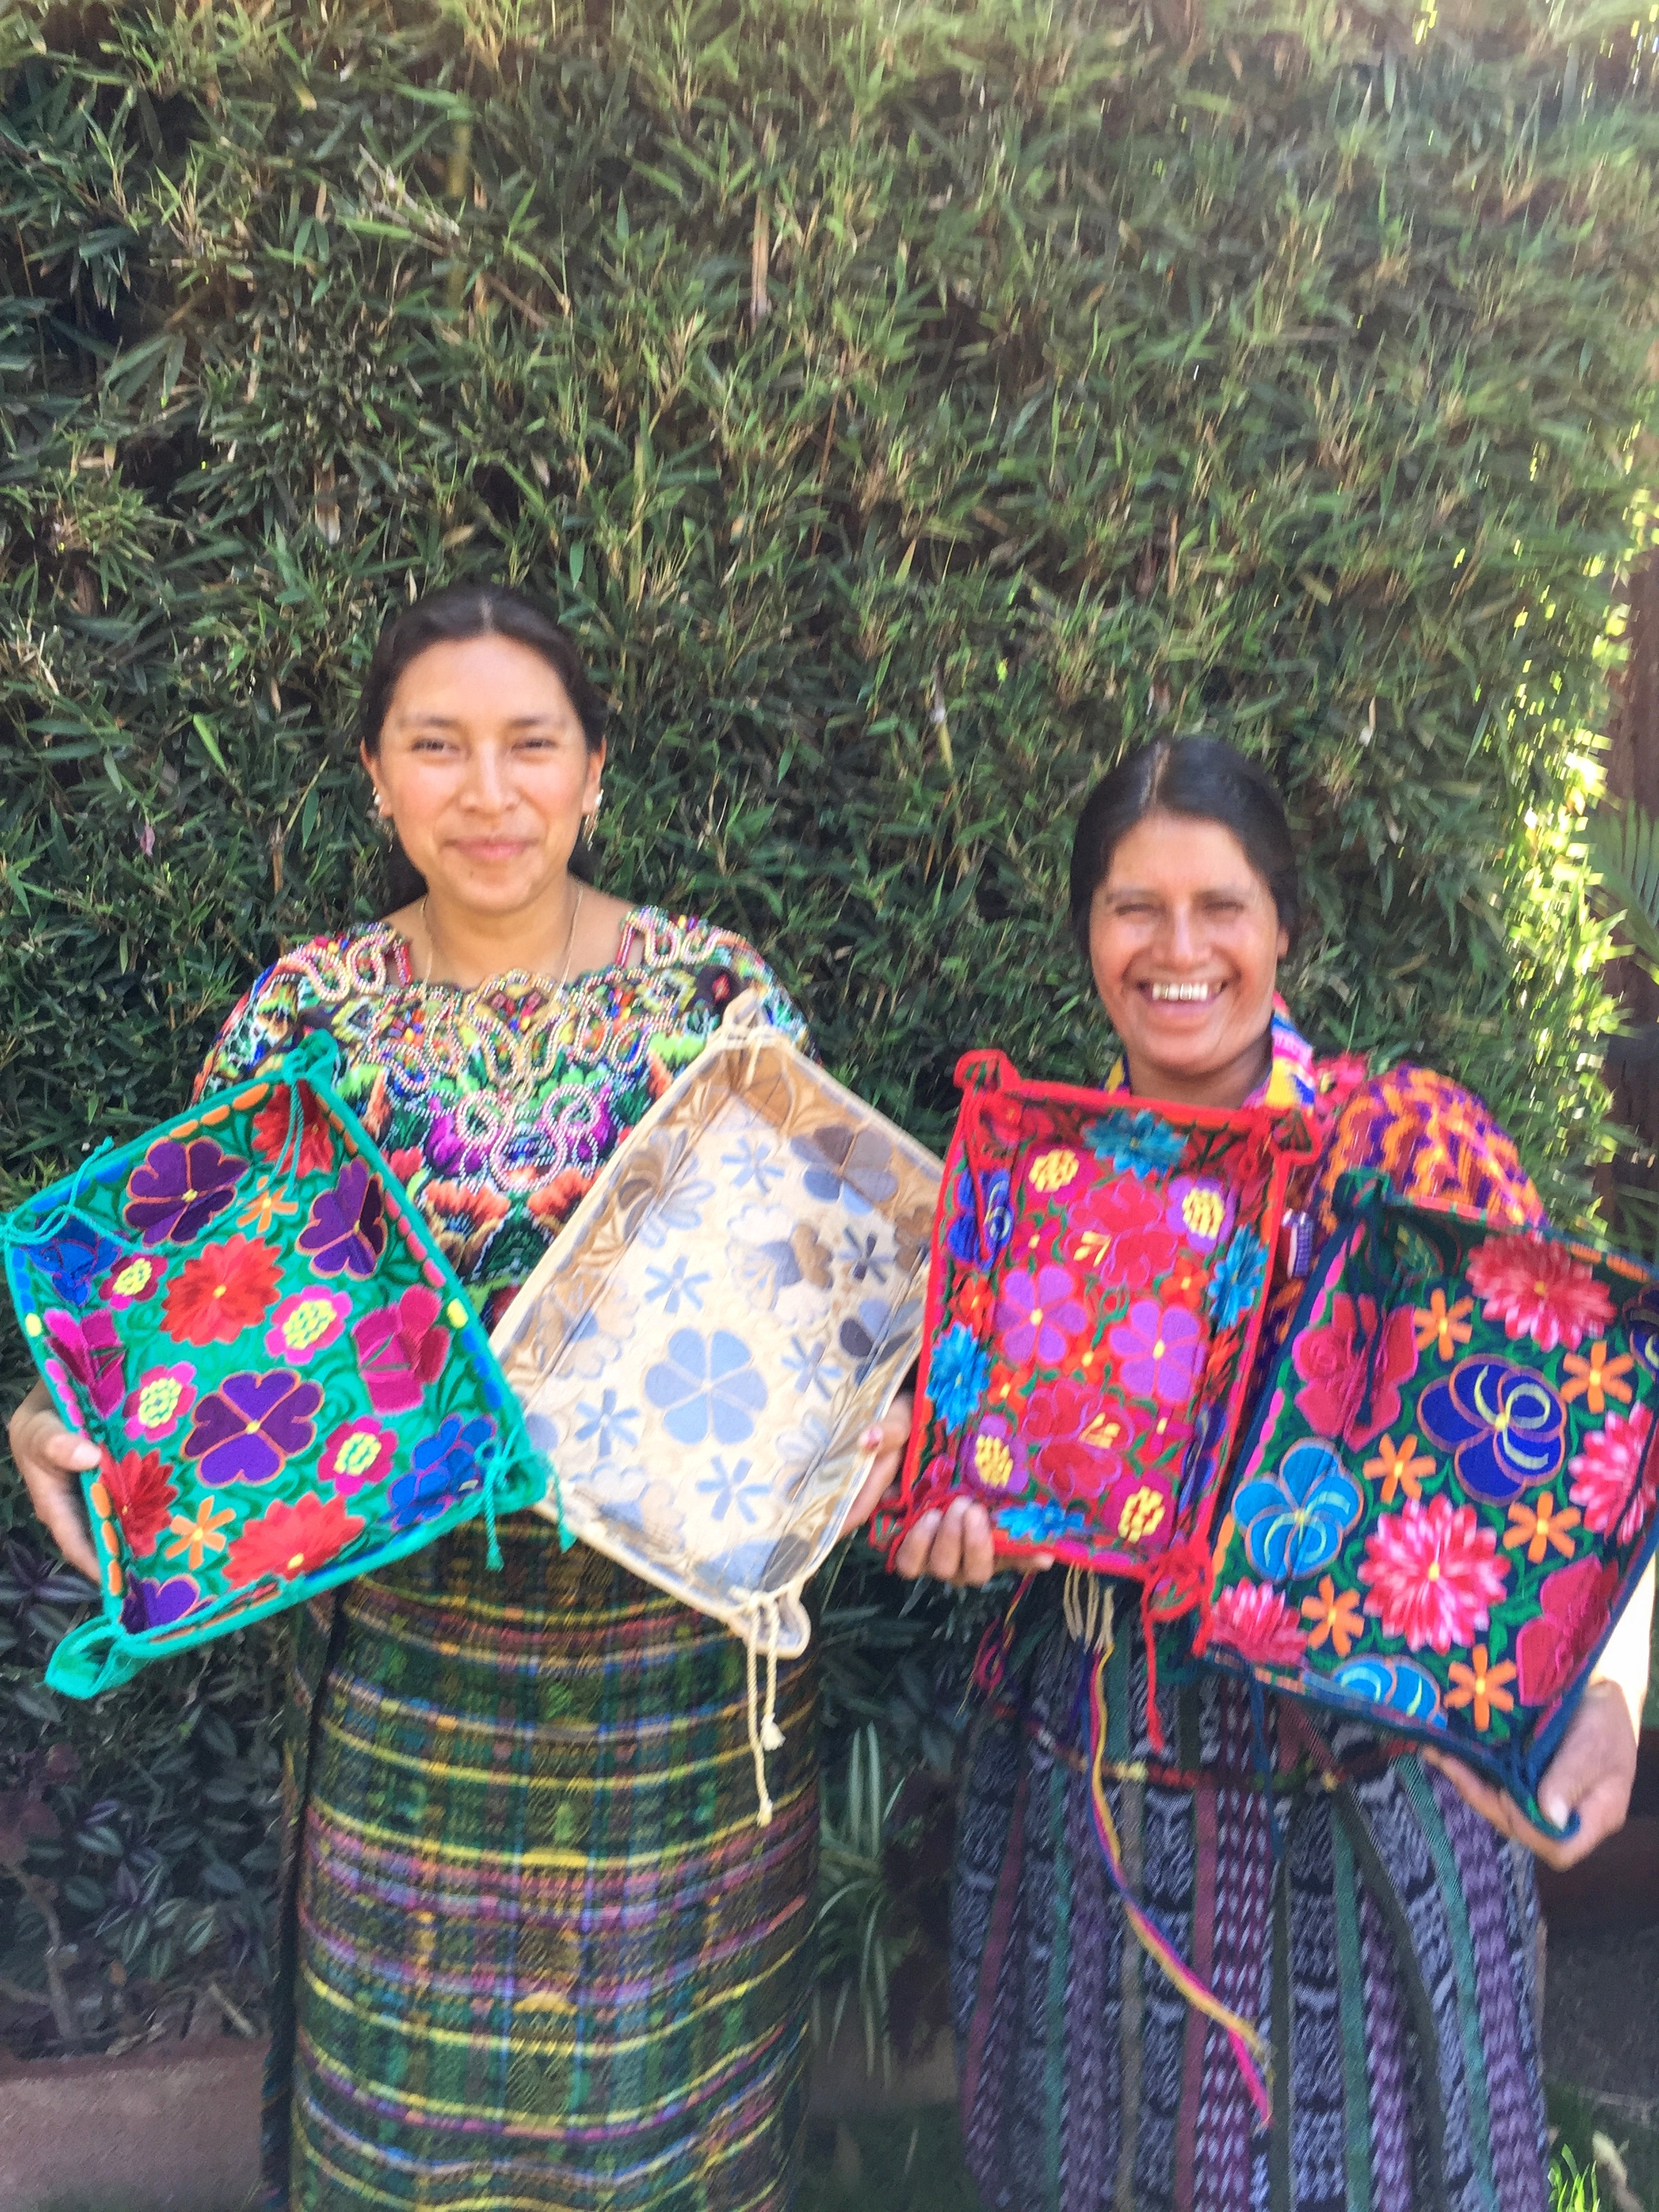 Erika Sop & Micaela Garcia - Cantel, Quetzaltenango - Friendship Bridge's clients for 4 cycles.This mother and daughter-in-law team is talented and unique. They produce our colorful soft fabric trays, as well as our clutches and bags, combining re-purposed huipils and leather.